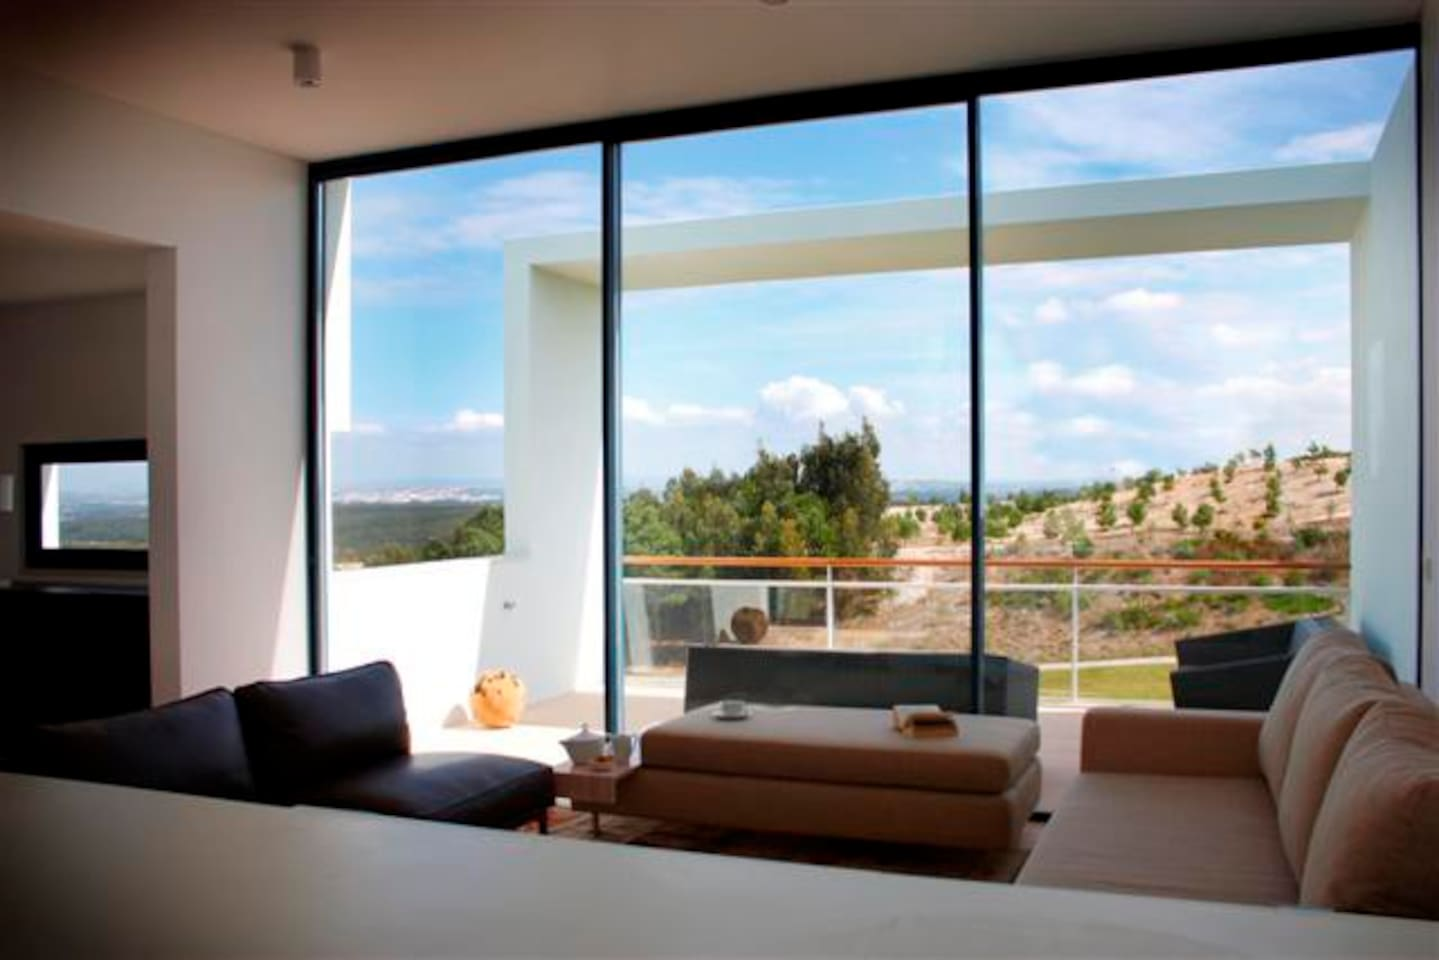 Living room leading to balcony and panoramic view of golf course and surrounding countryside.